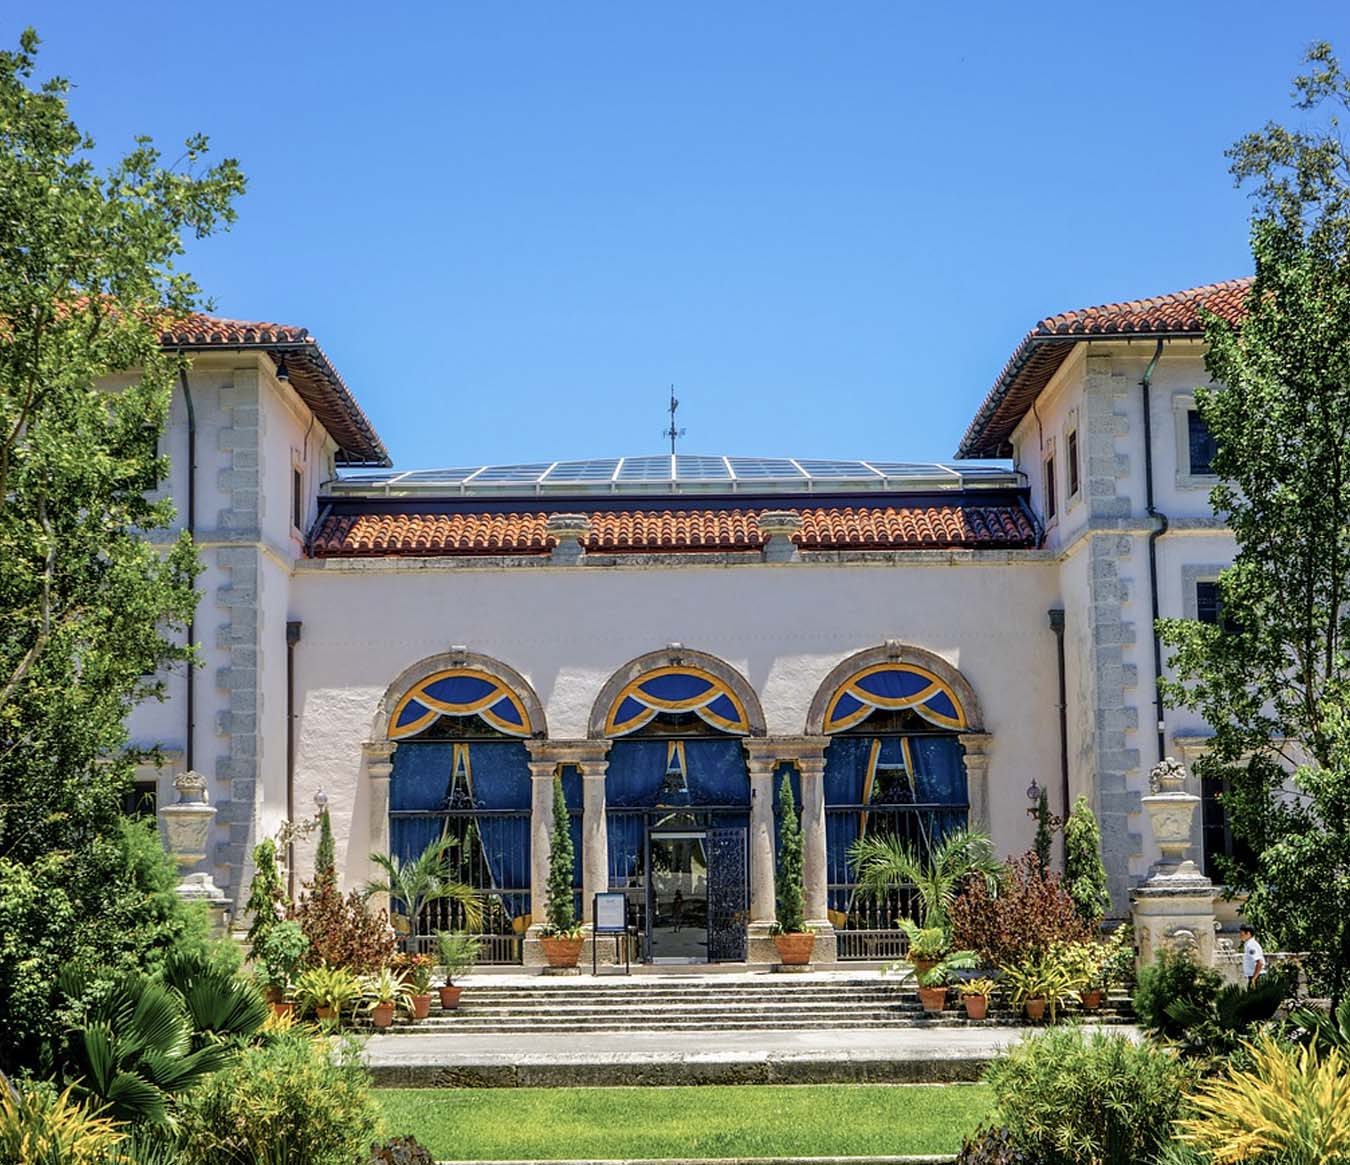 Things to Do in Miami - Vizcaya Museum and Gardens